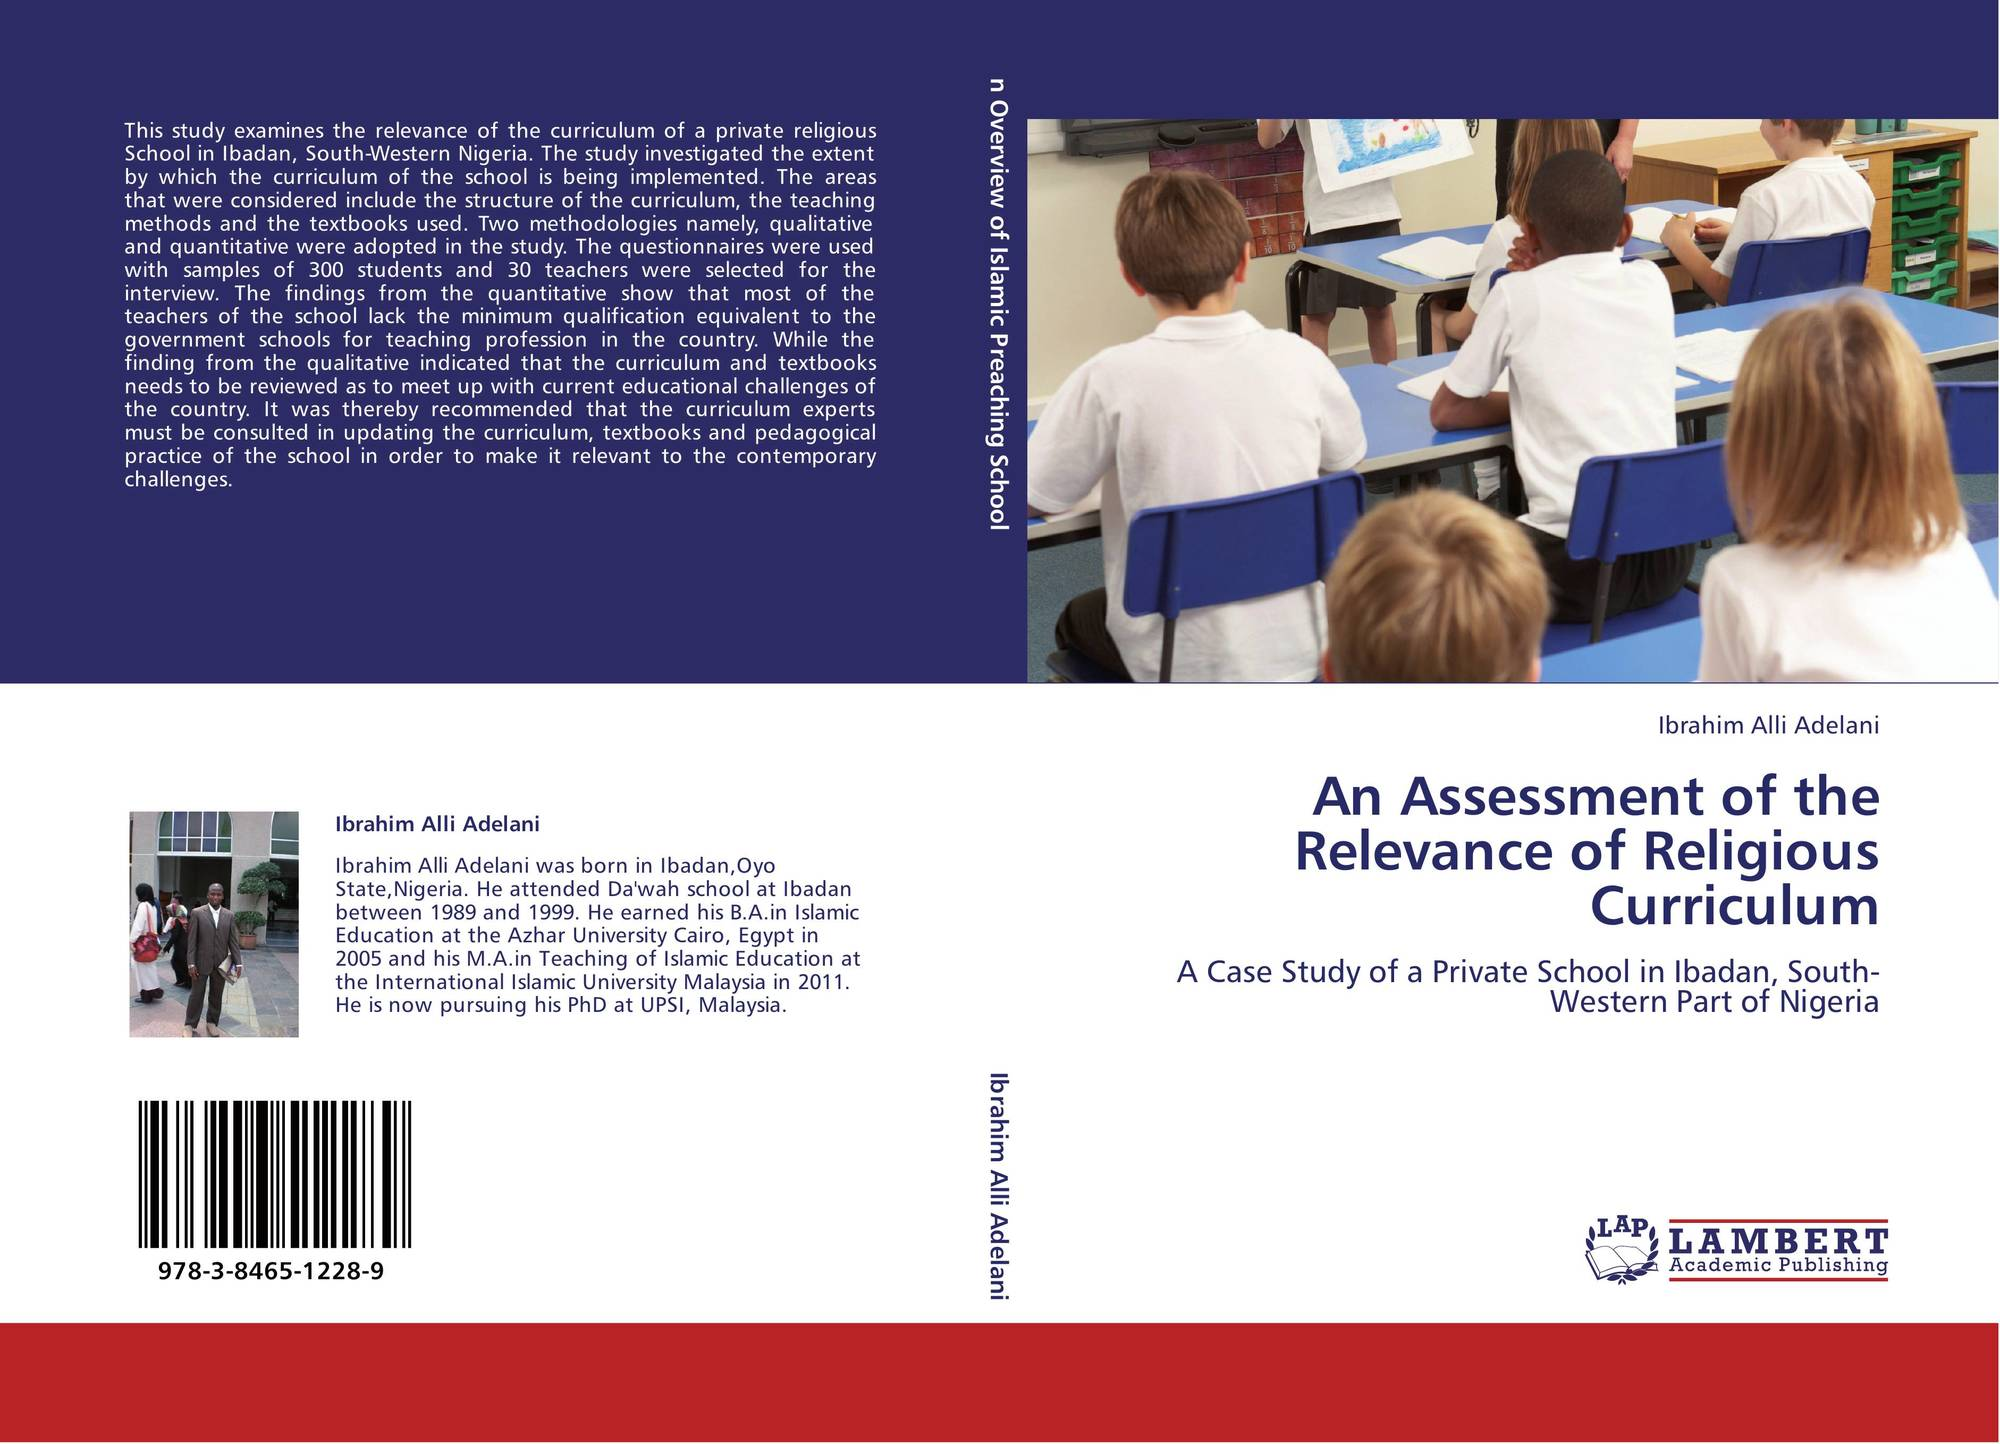 a description of the curriculum including studies of tenets of faith of a certain religion Religious education would be replaced by religion, beliefs and values, compulsory in all schools up to the sixth form it would include humanism as a belief system faith schools would add to the subject according to their own beliefs, but the core of the curriculum would be compulsory in all state-funded schools.